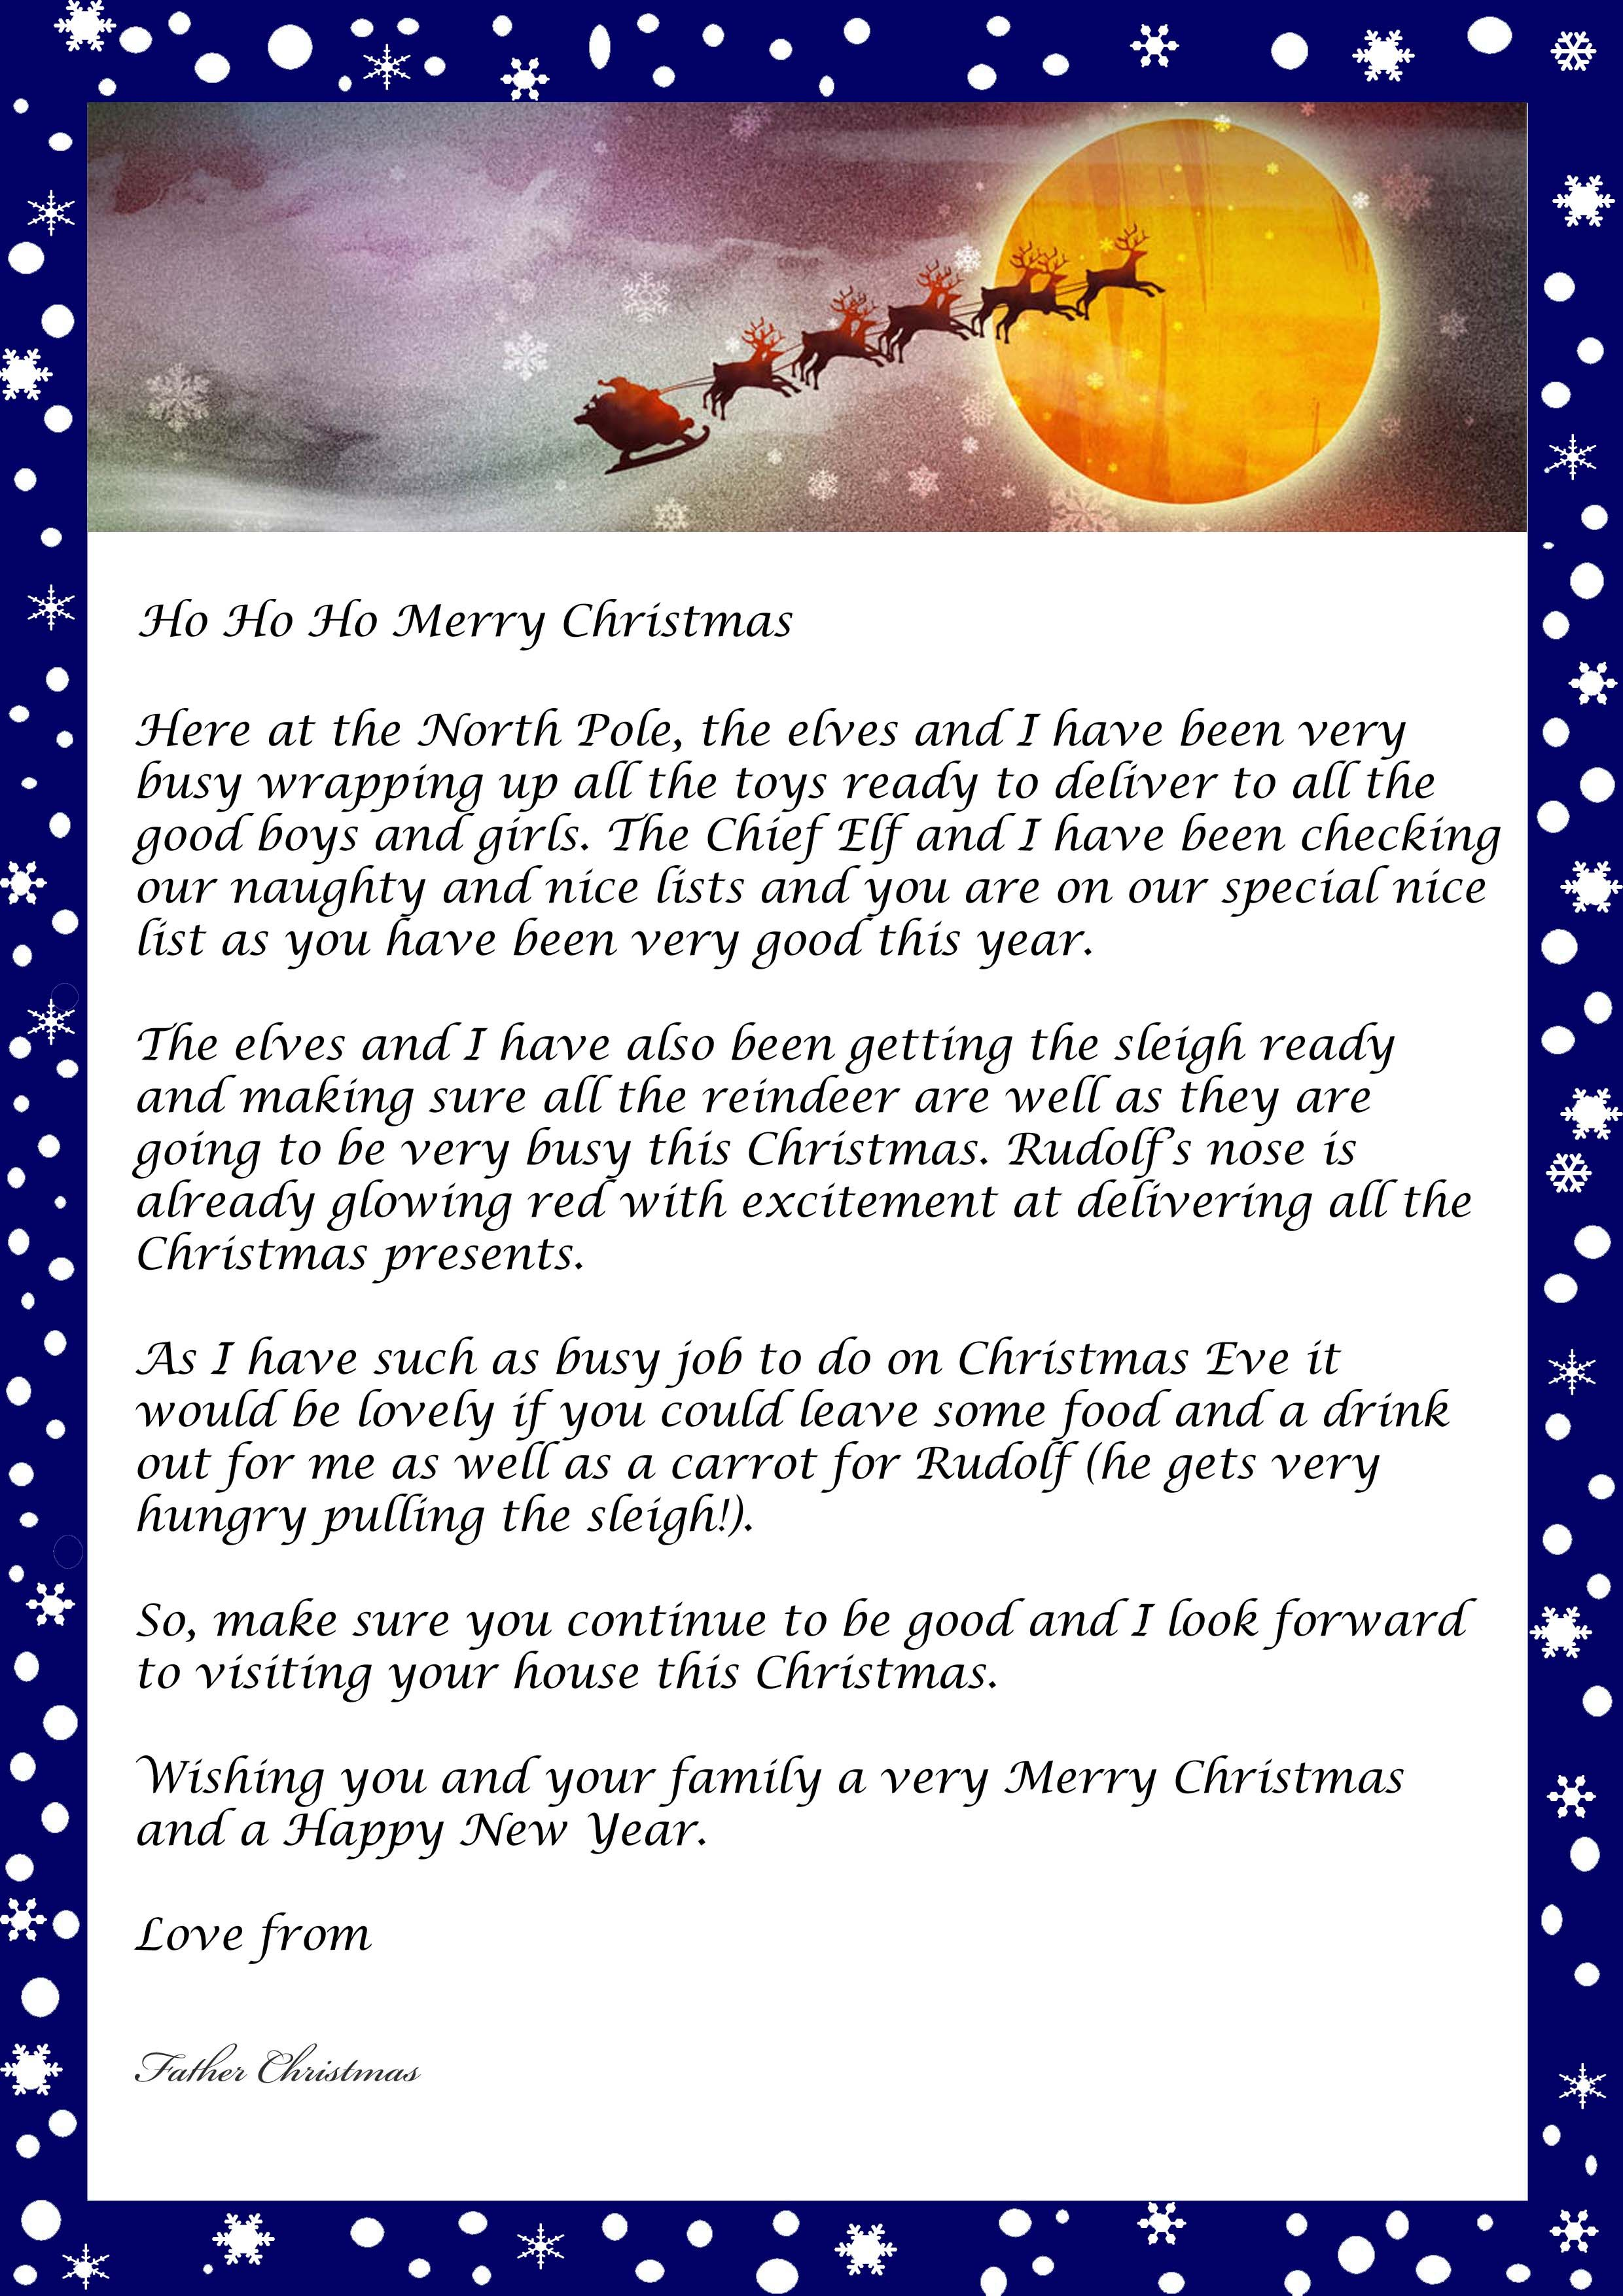 Letter from father christmas free printable templateg 24803508 letter from father christmas free printable templateg 2480 spiritdancerdesigns Image collections